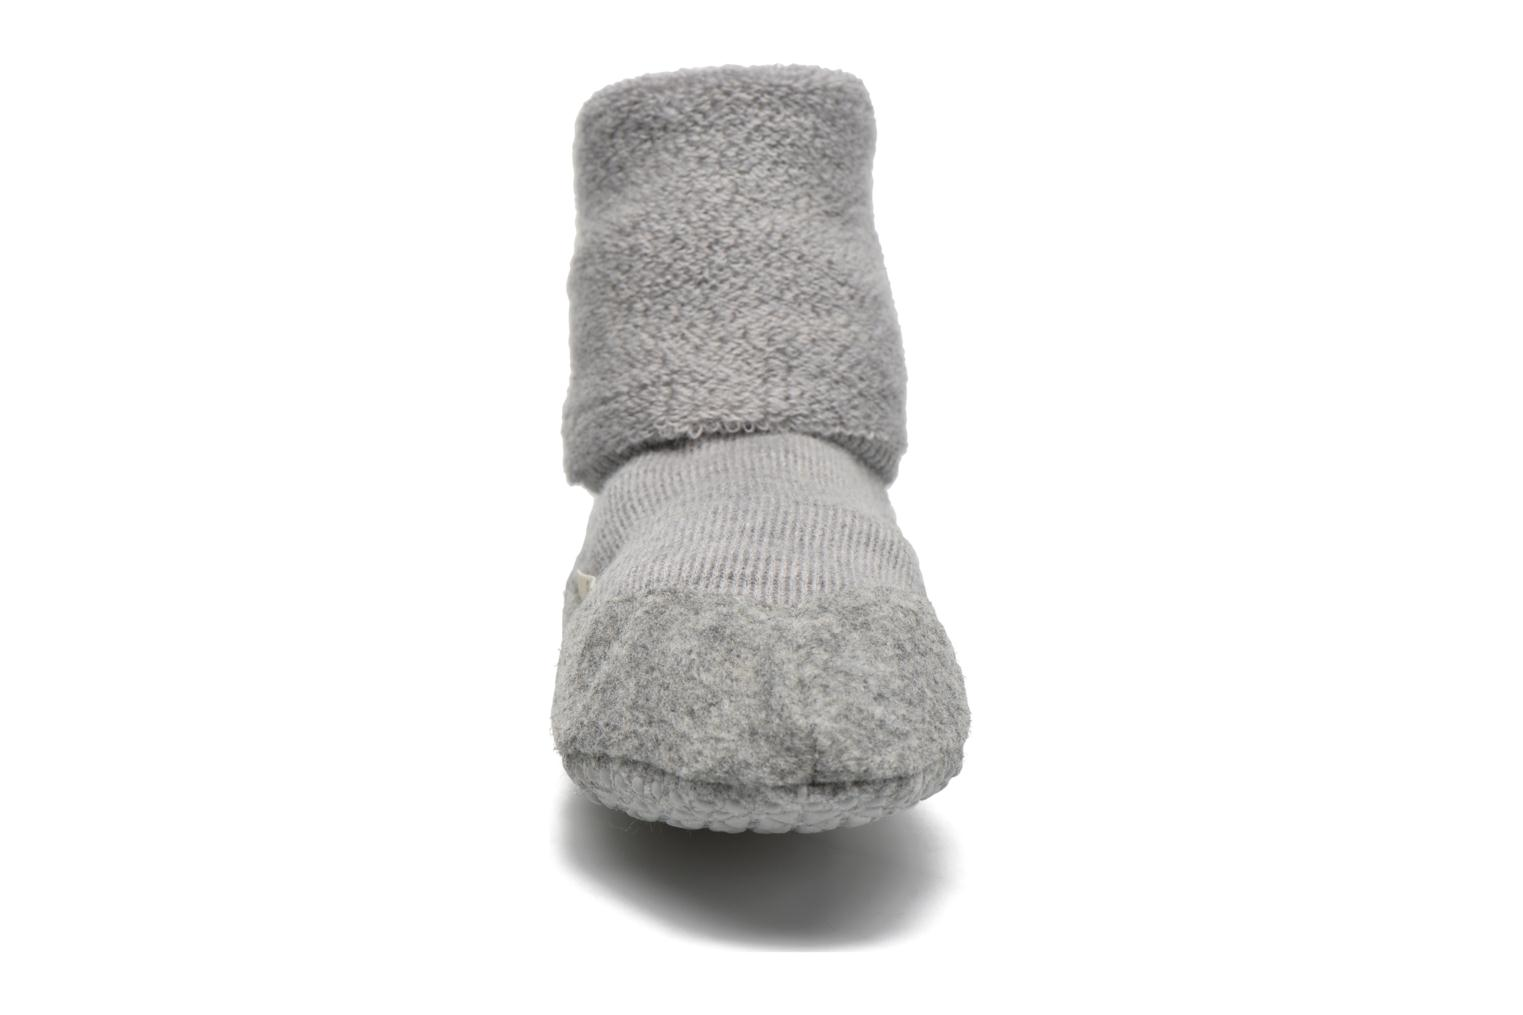 Chaussons-chaussettes Cosyshoe 3400